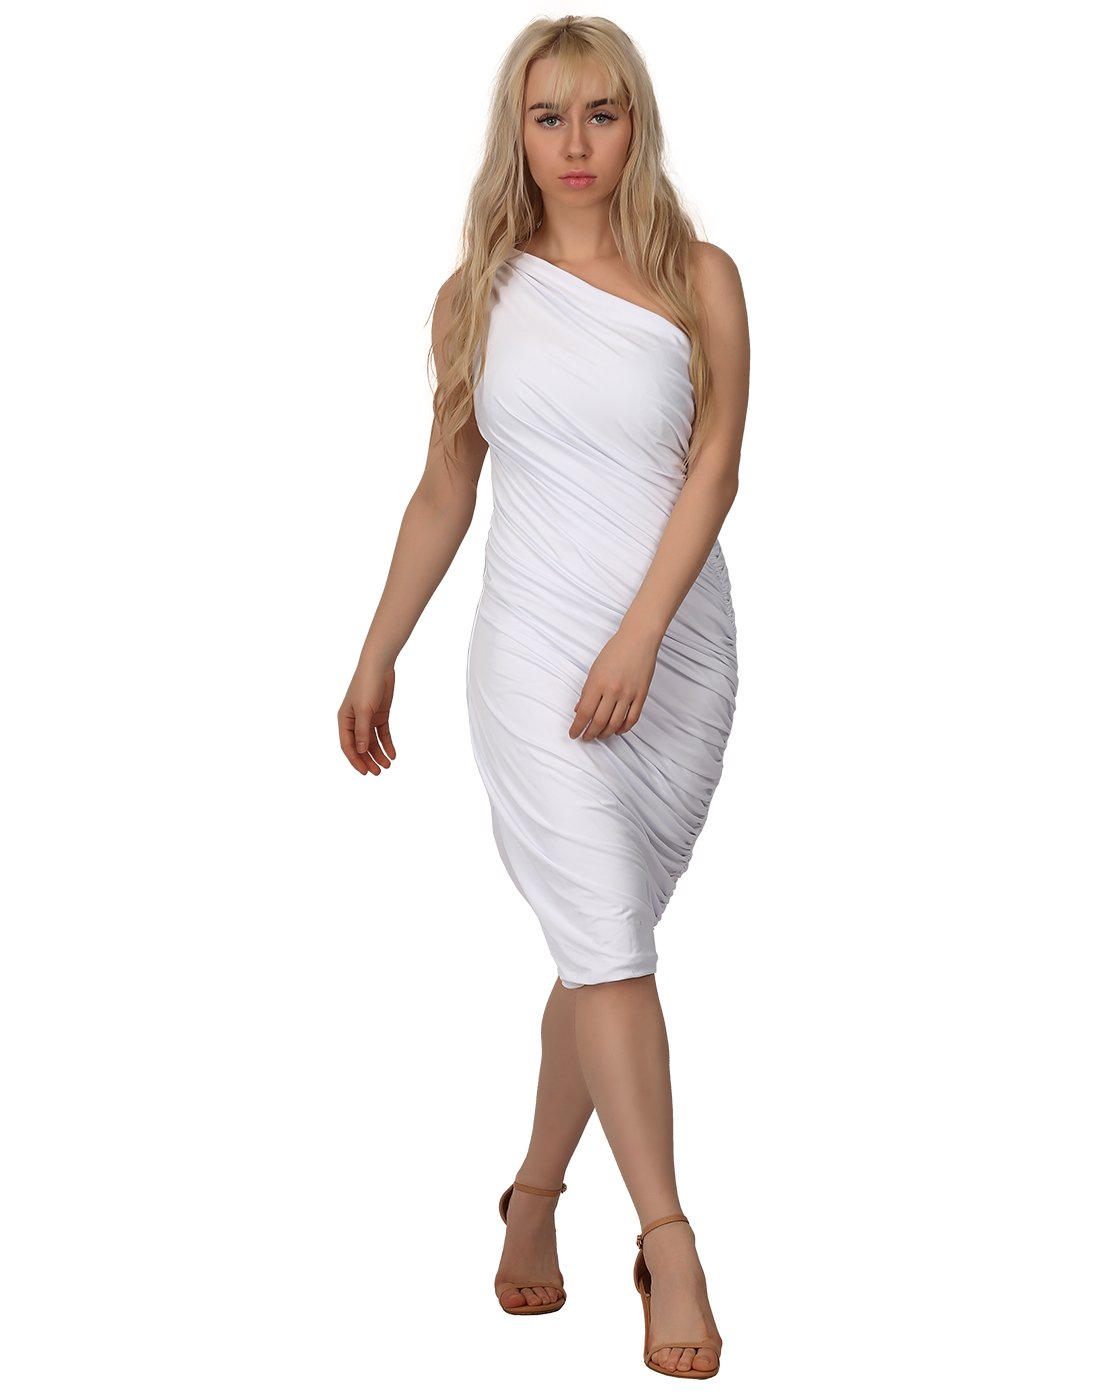 HDE Women's One Shoulder Midi Cocktail Dress (White, Small)